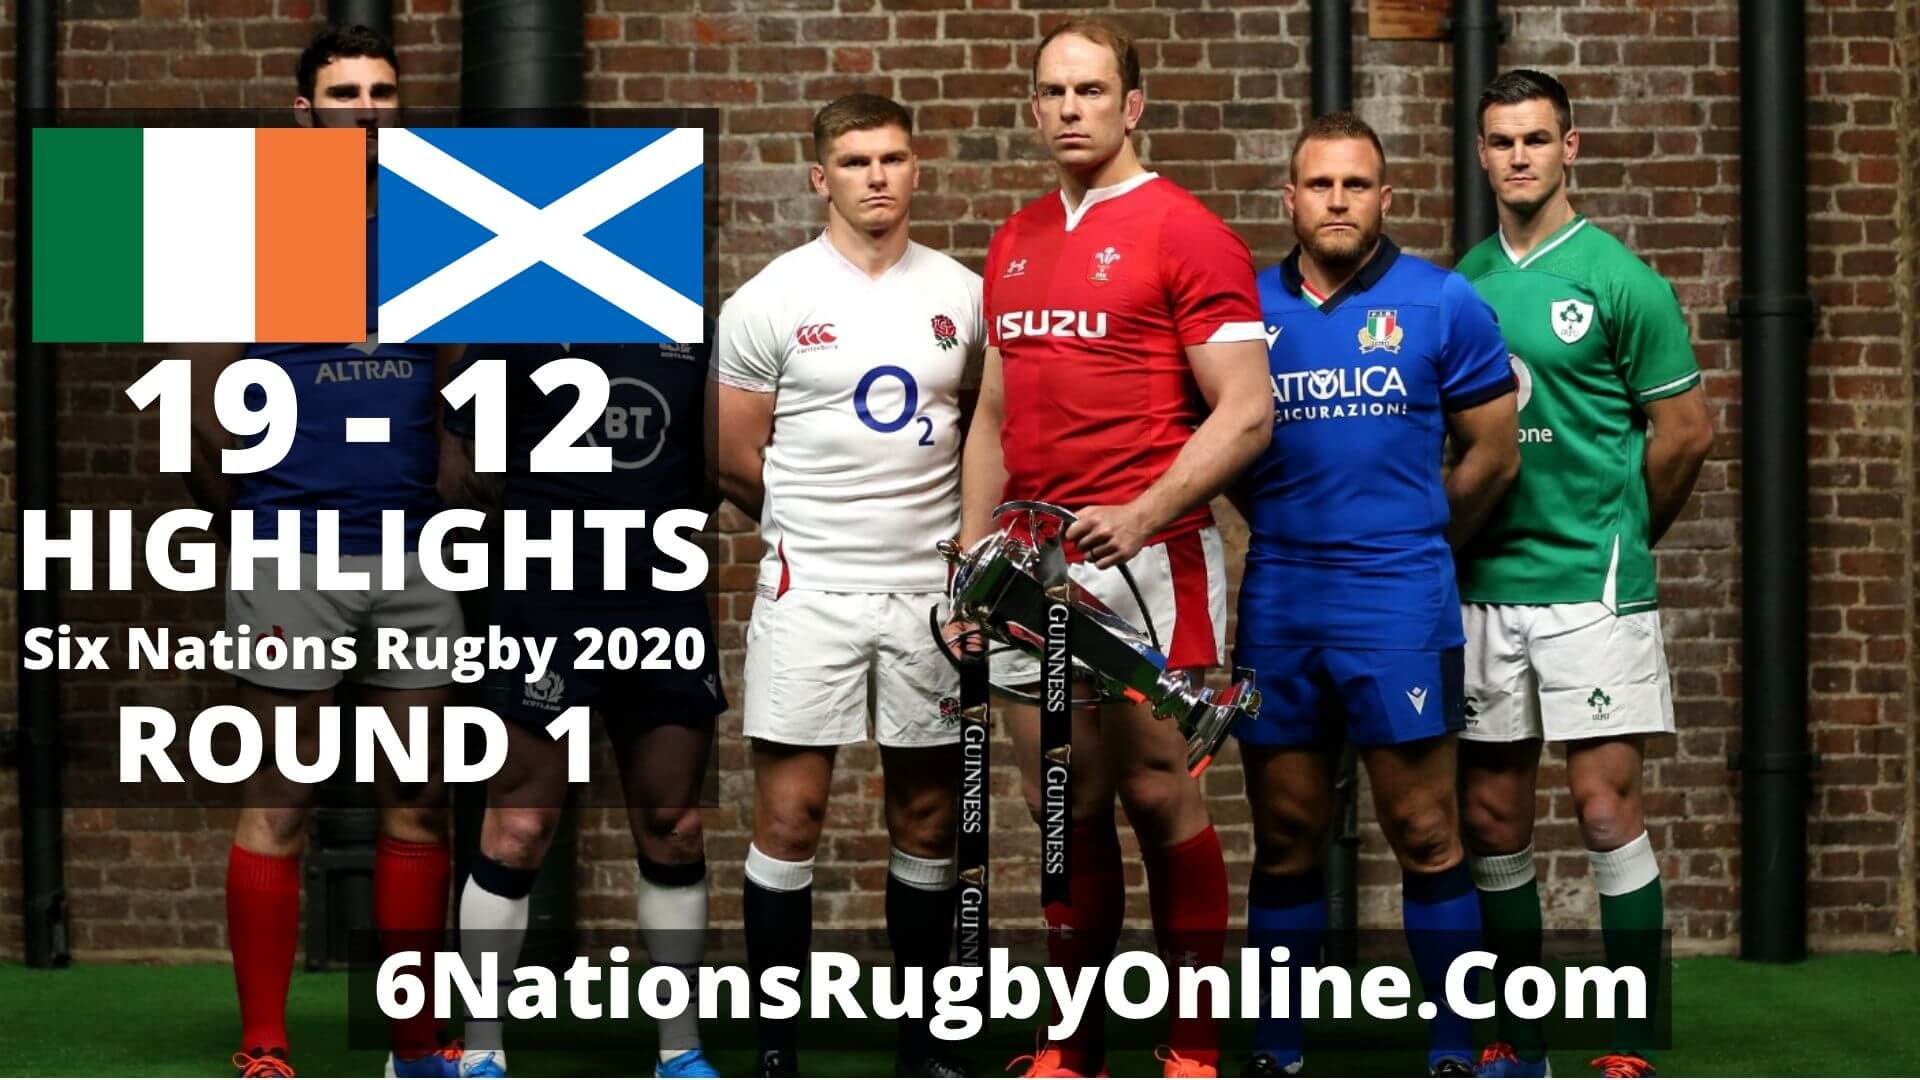 Ireland vs Scotland Six Nations Rugby Highlights 2020 Full Match Replay